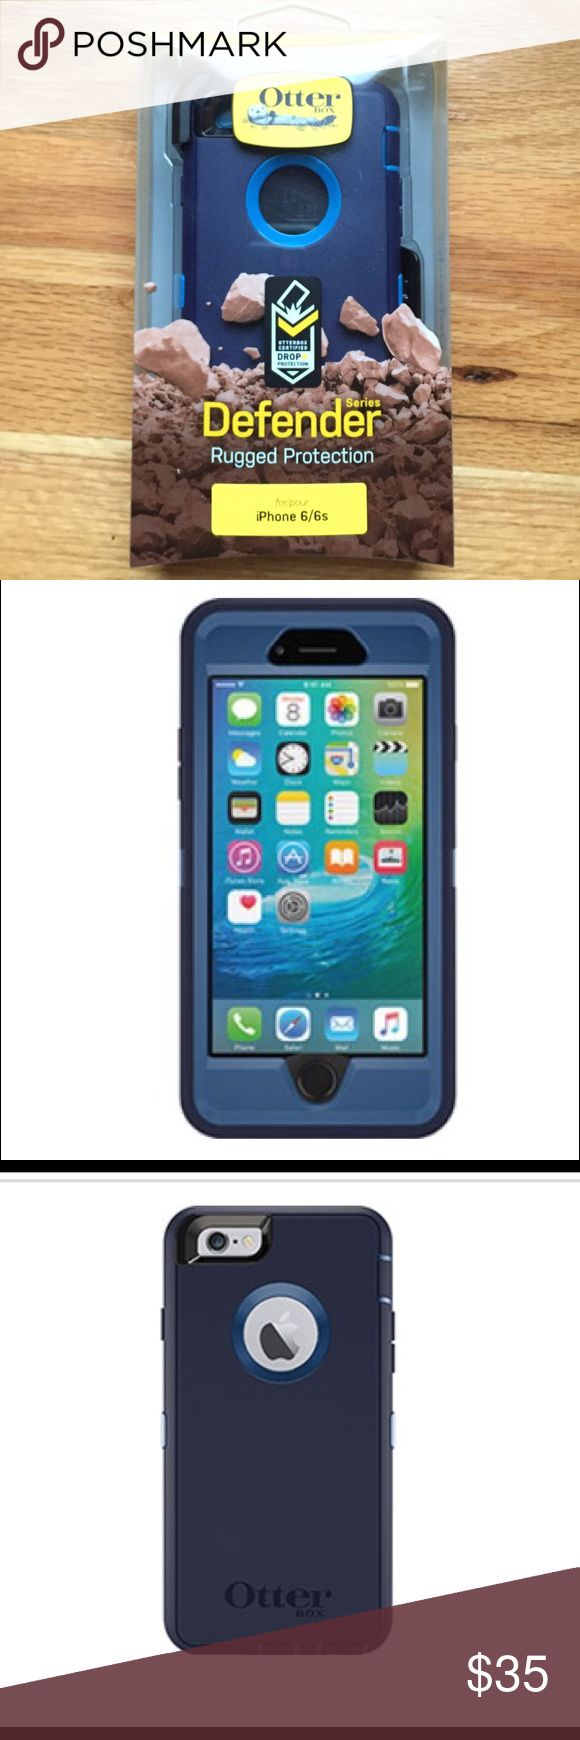 Brand New-sealed box-OtterBox Defender-iPhone 6/6s Brand New: In its Original Box that was never never opened. Color: Indigo Harbor (two tones of blue). Otterbox Defender Series Provides rugged protection for iPhone 6 and/or 6/s. Protects against dust, sc